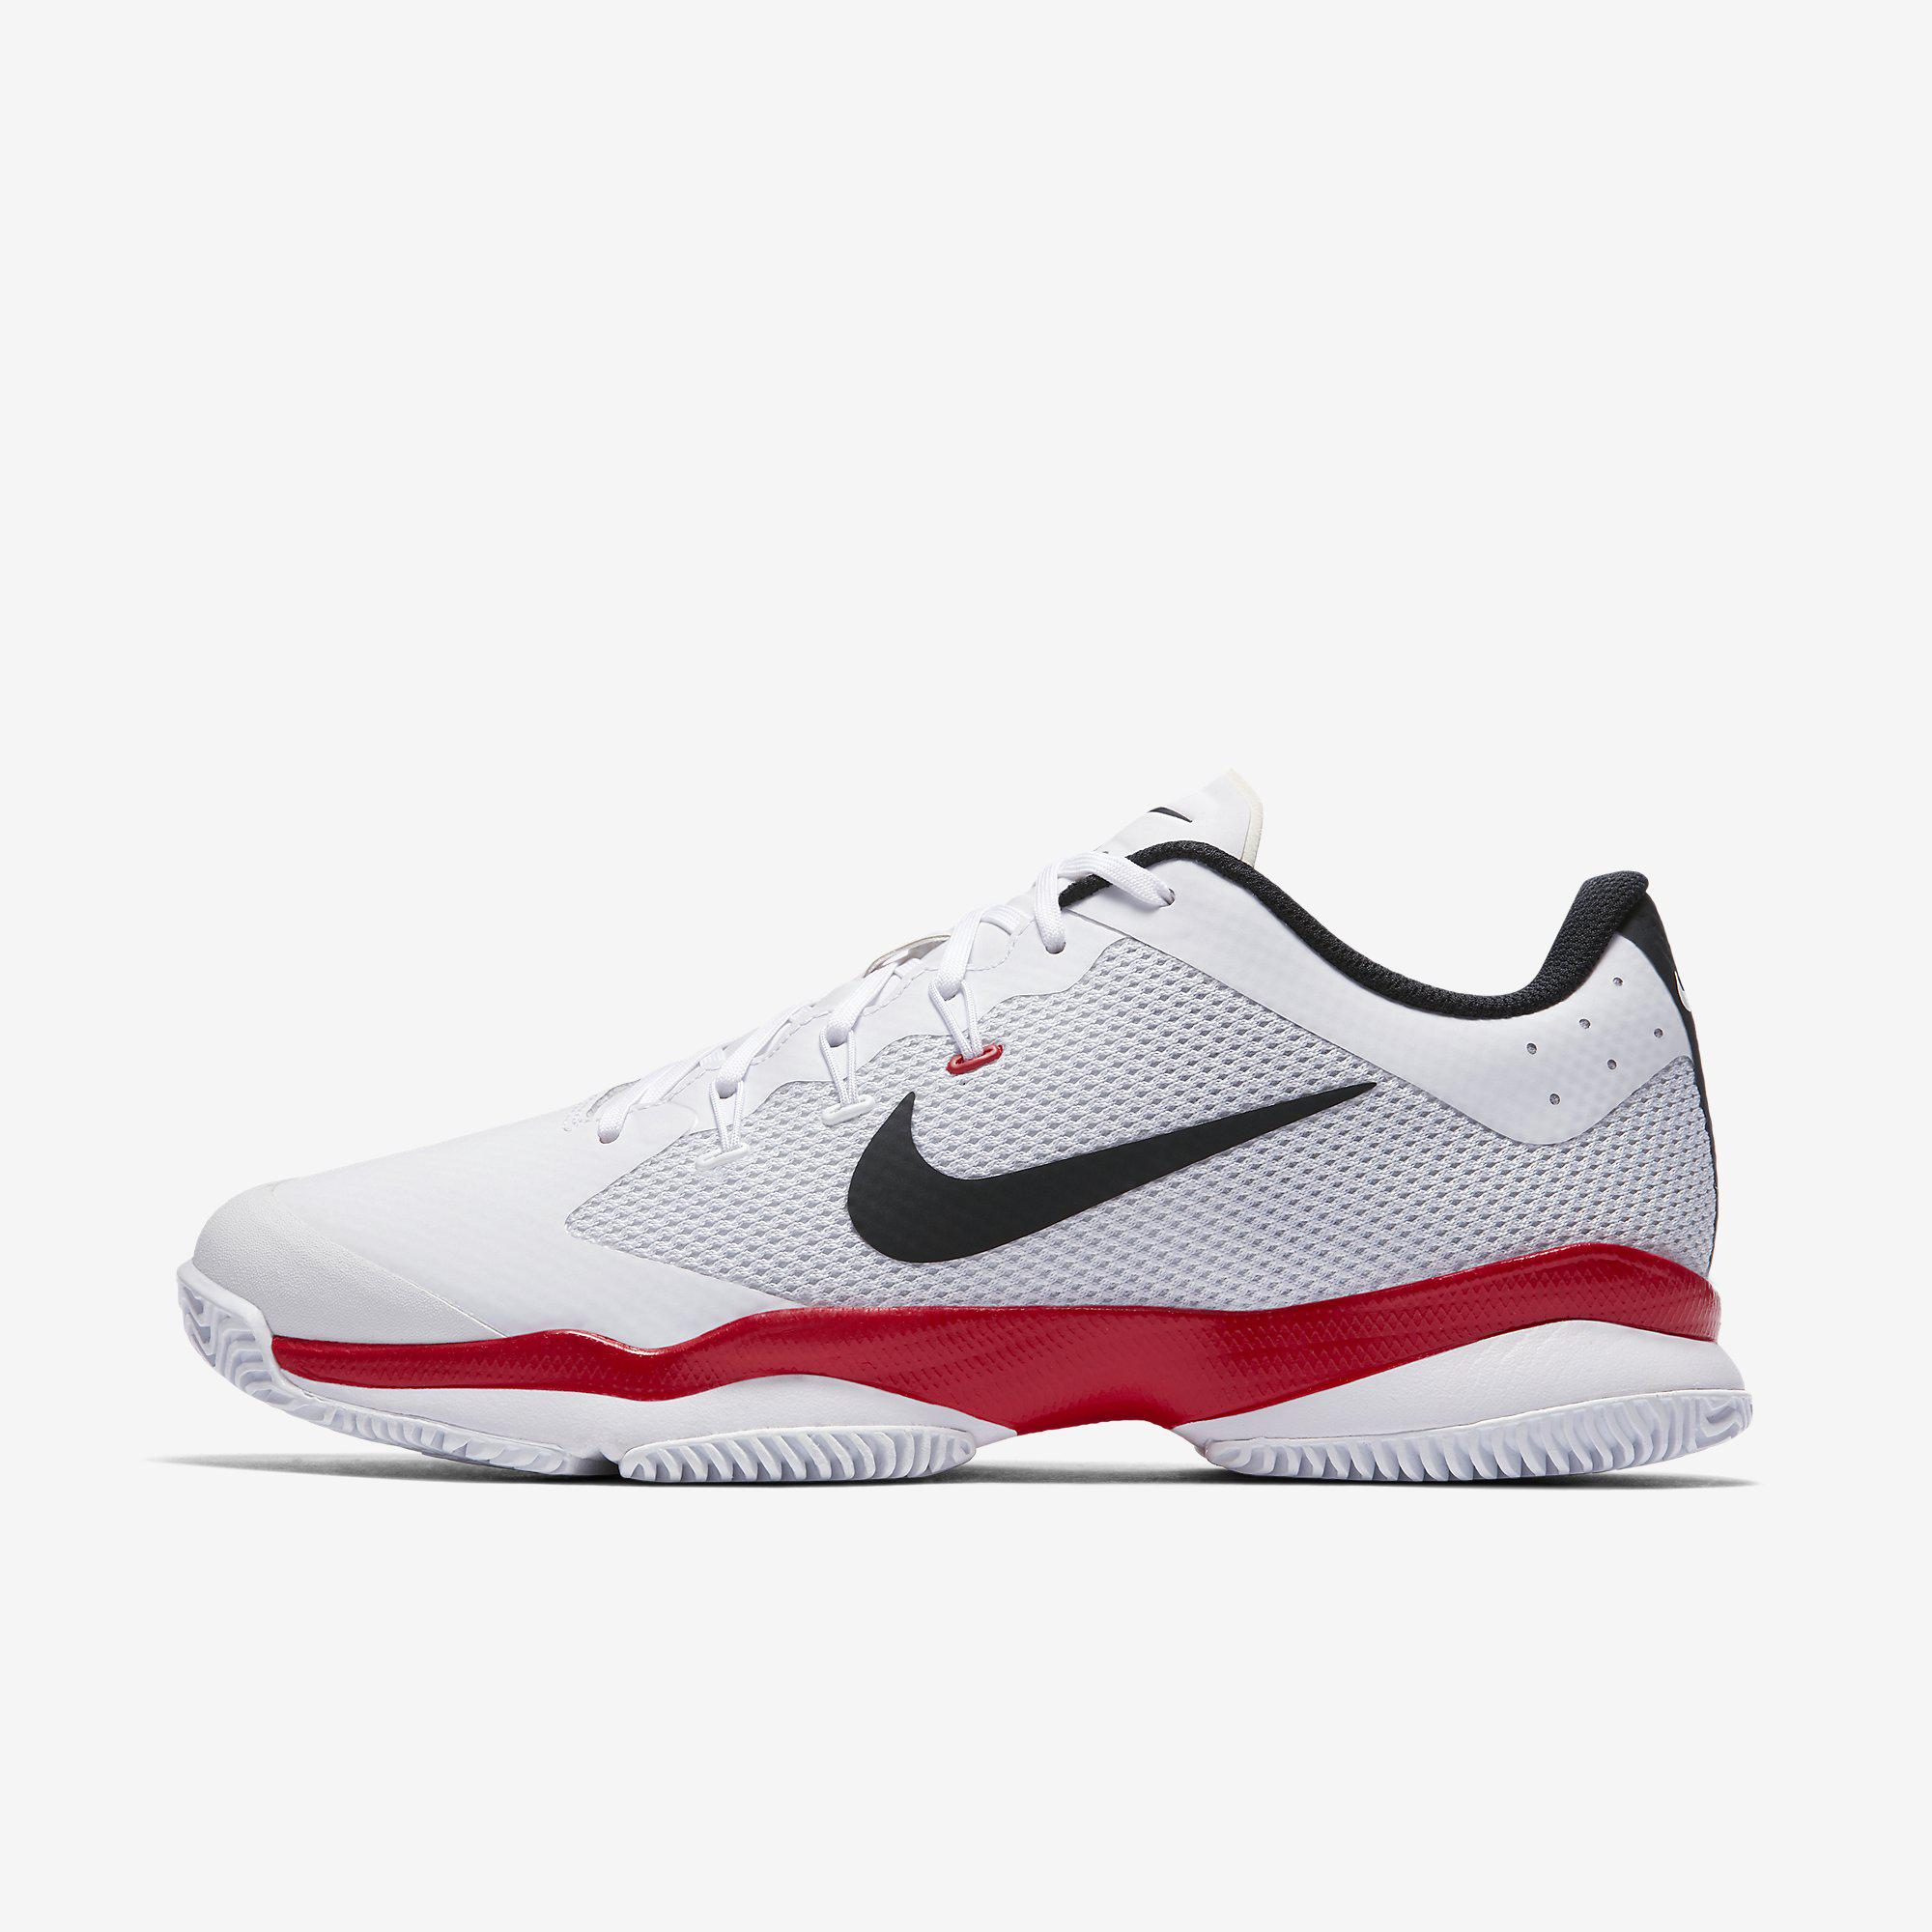 9d861f071f326 Nike Mens Air Zoom Ultra Tennis Shoes - White Red - Tennisnuts.com